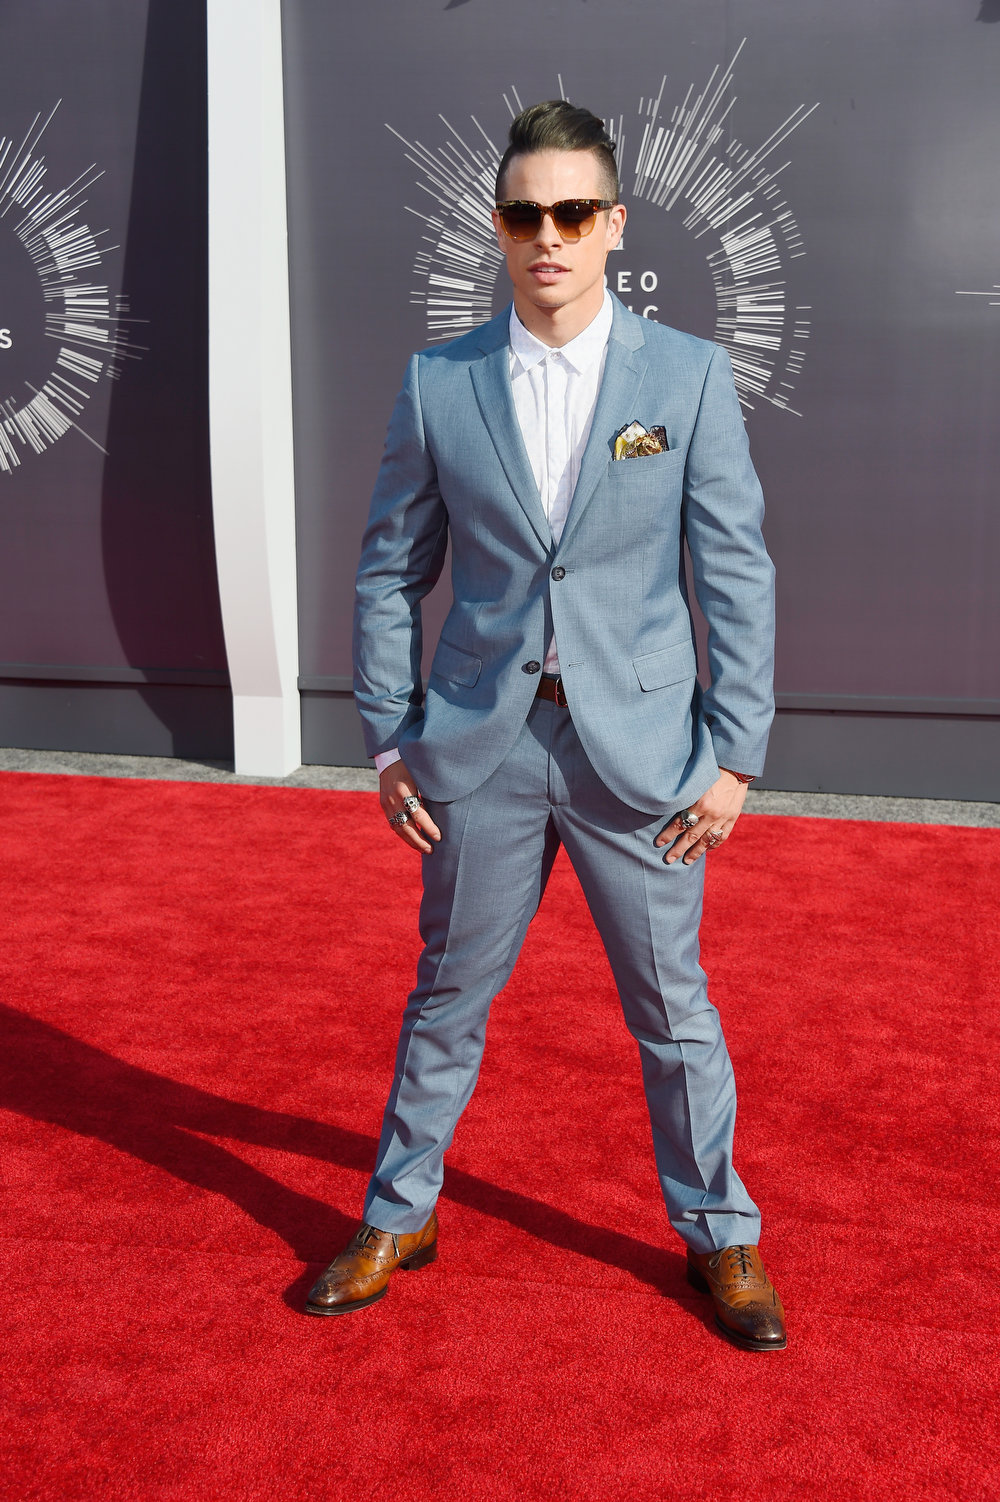 . Dancer Casper Smart attends the 2014 MTV Video Music Awards at The Forum on August 24, 2014 in Inglewood, California.  (Photo by Frazer Harrison/Getty Images)